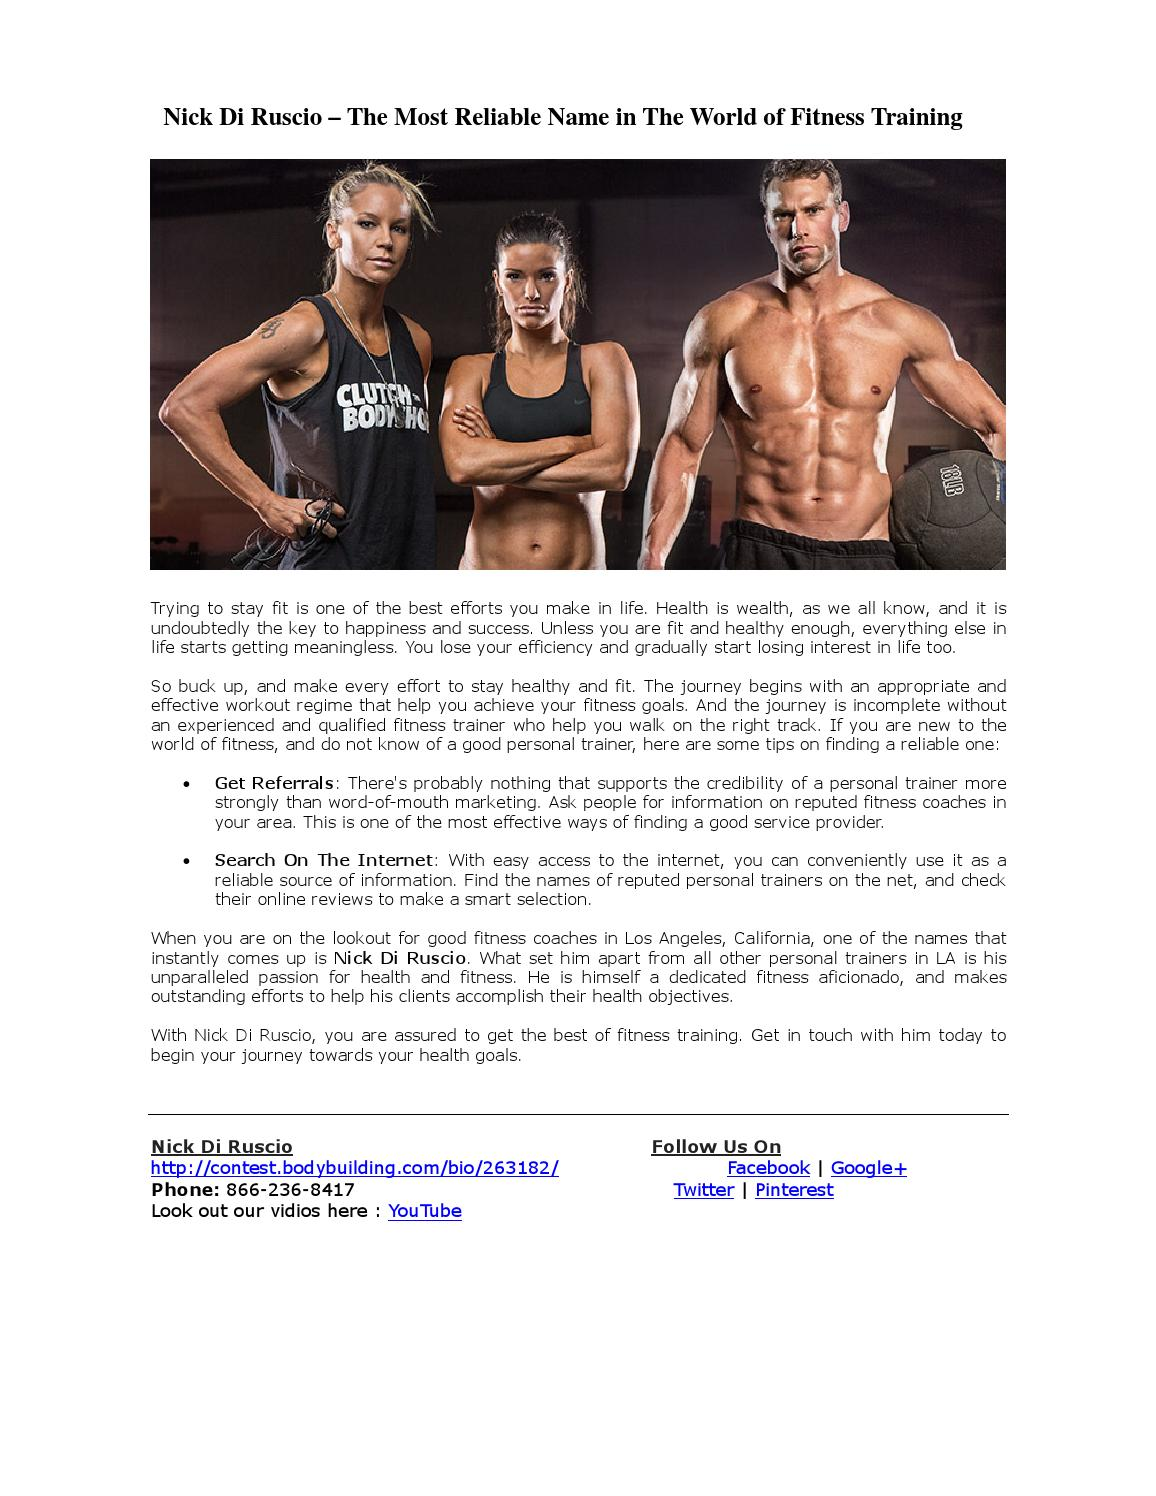 The Most Reliable Name In The World Of Fitness Training By Nick Di